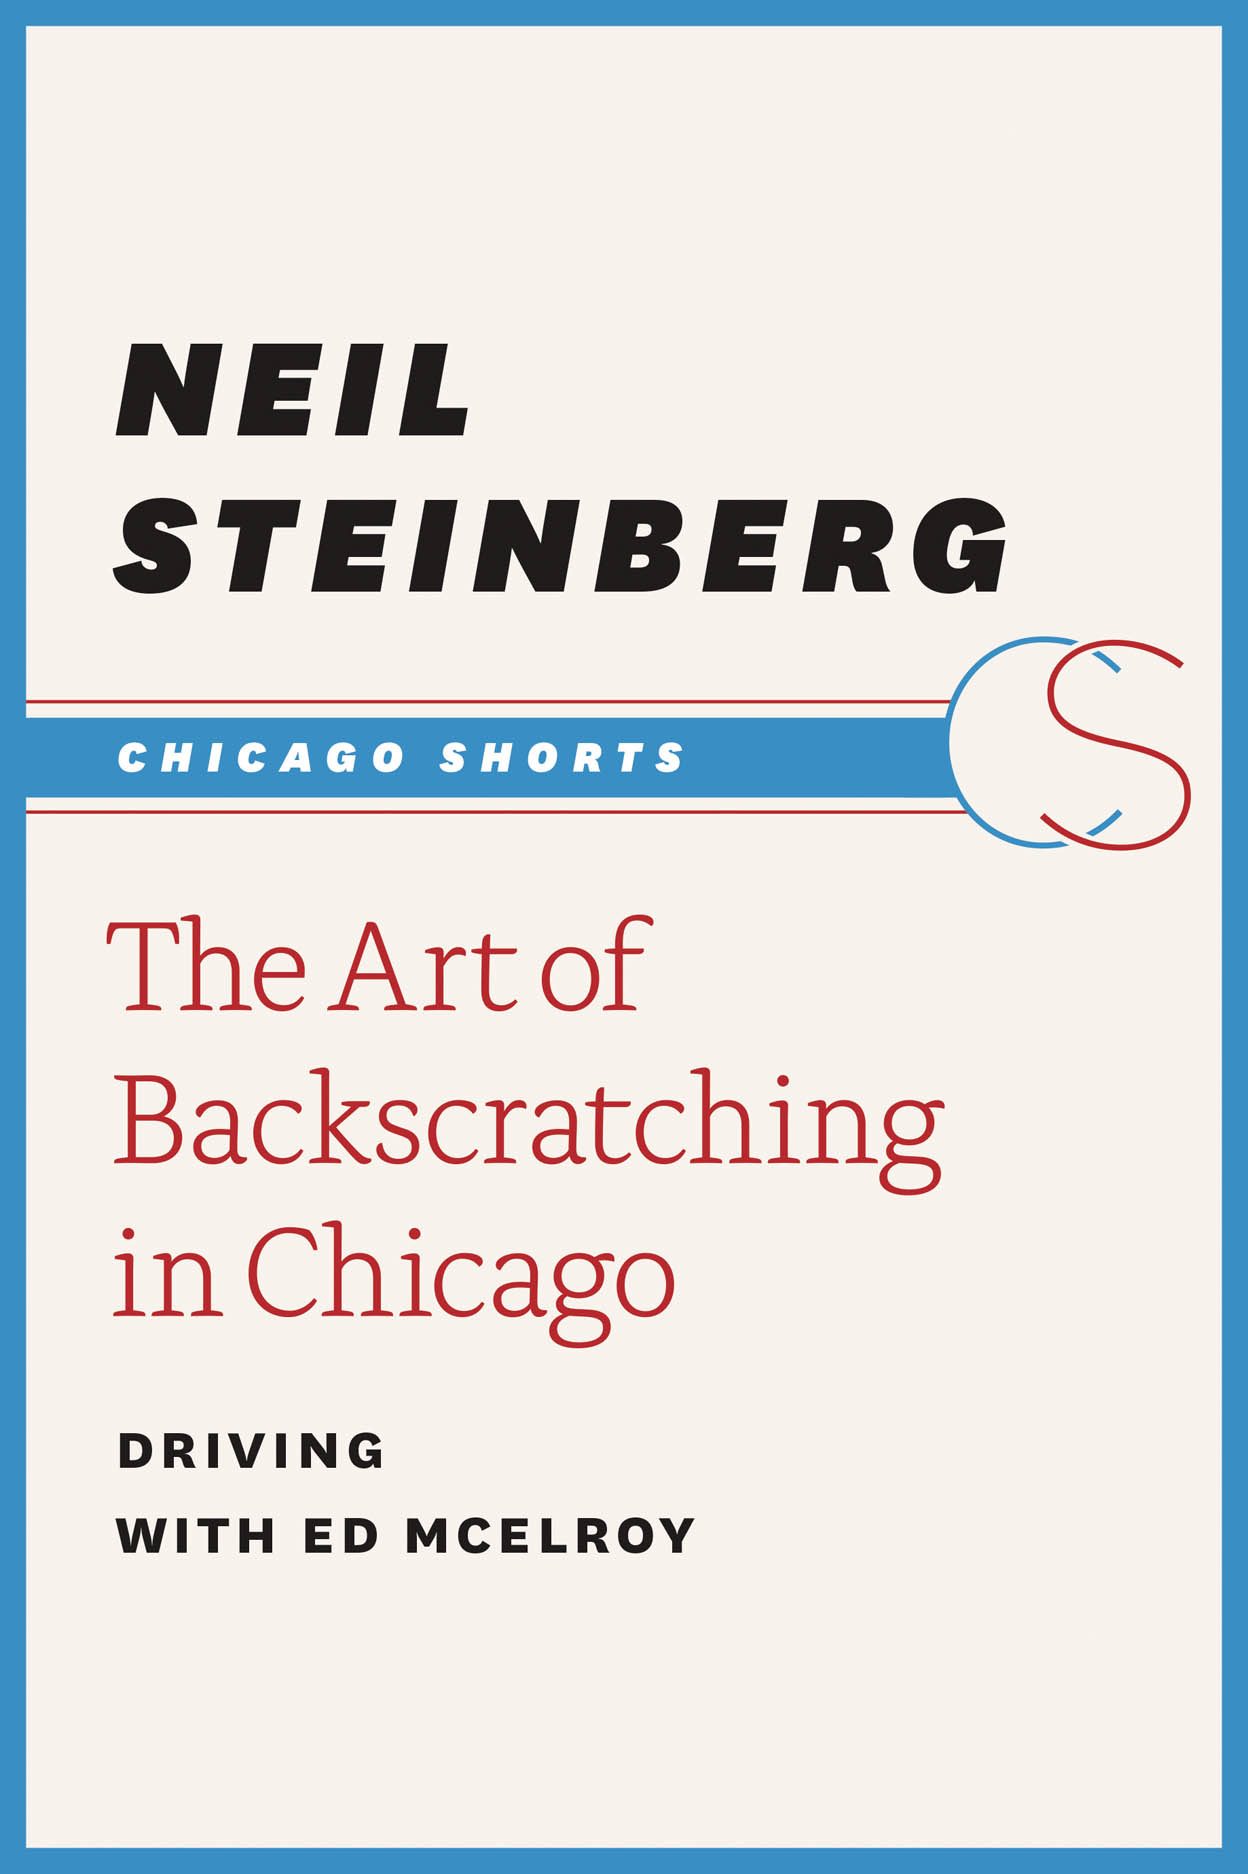 The Art of Backscratching in Chicago